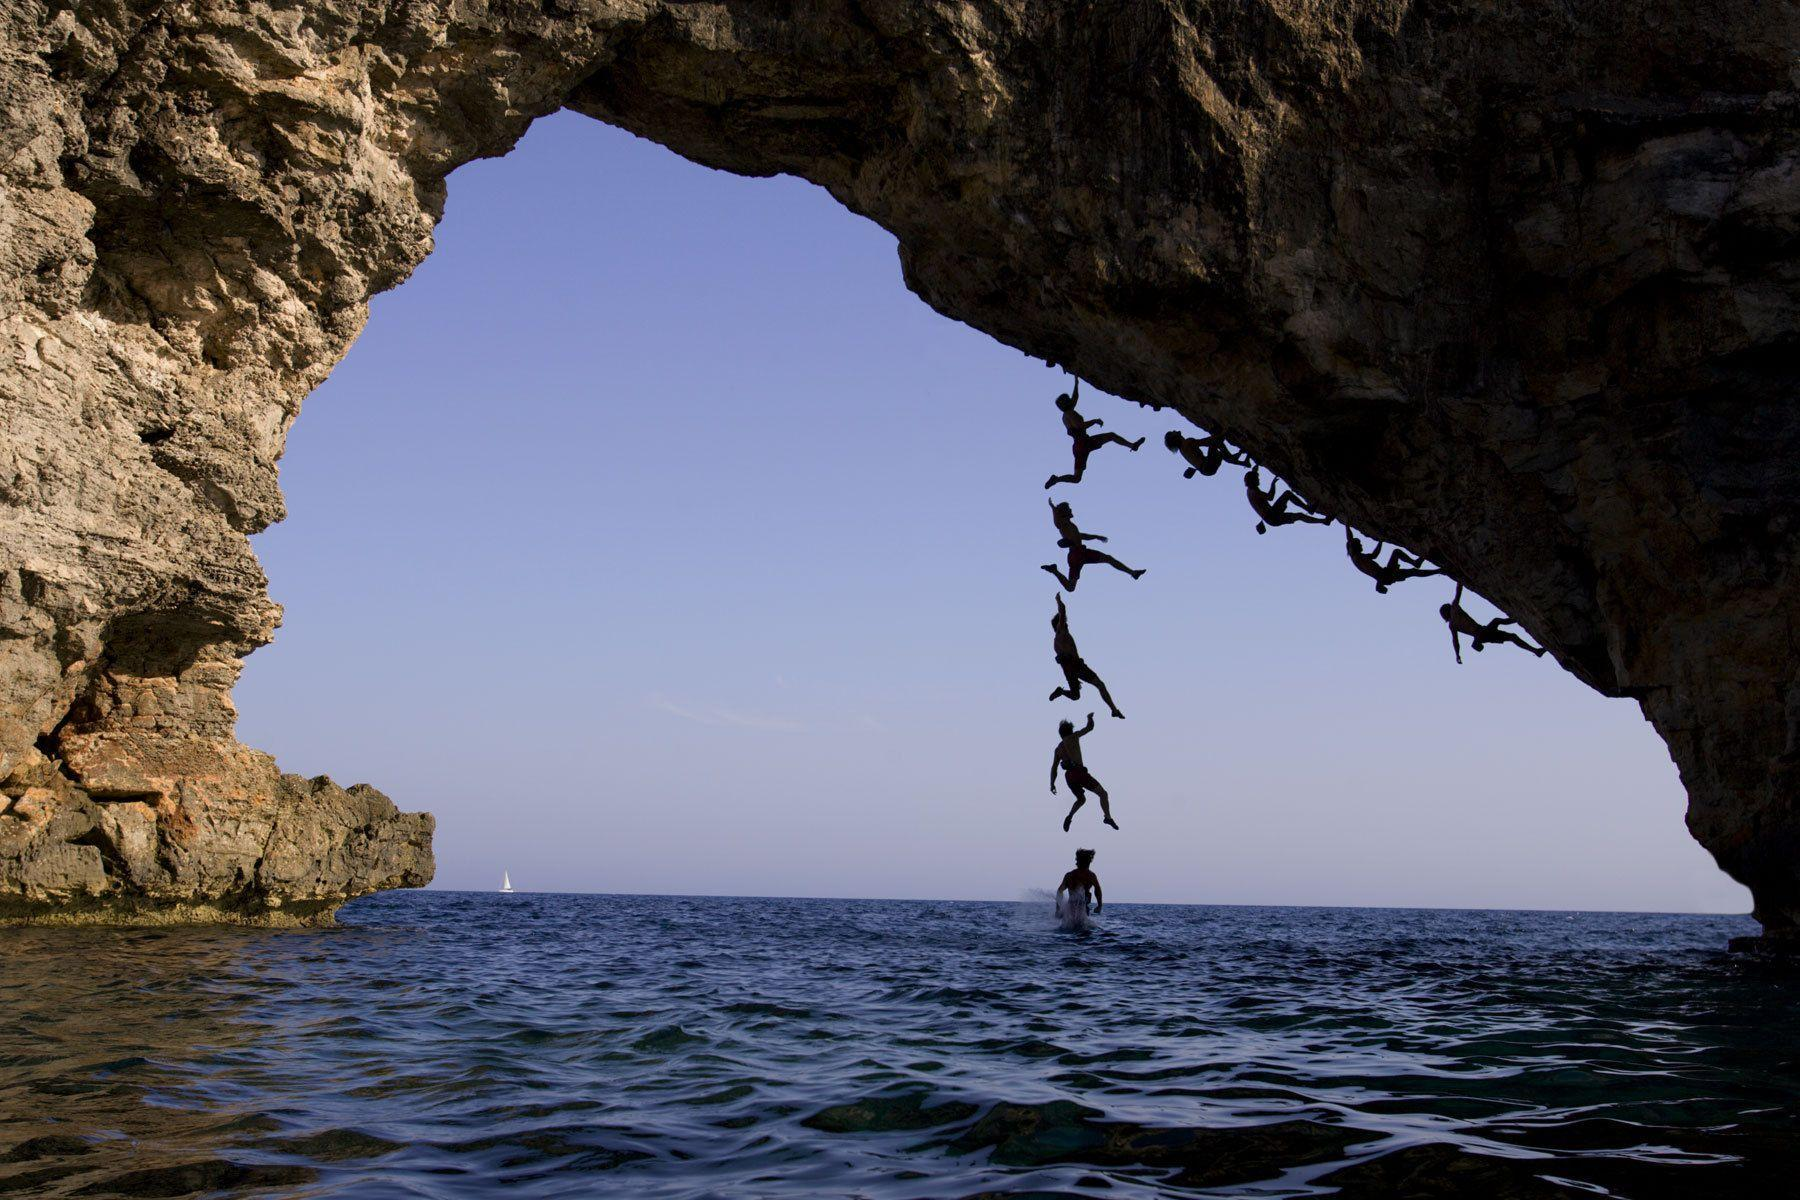 Chris Sharma Wallpapers - Wallpaper Cave